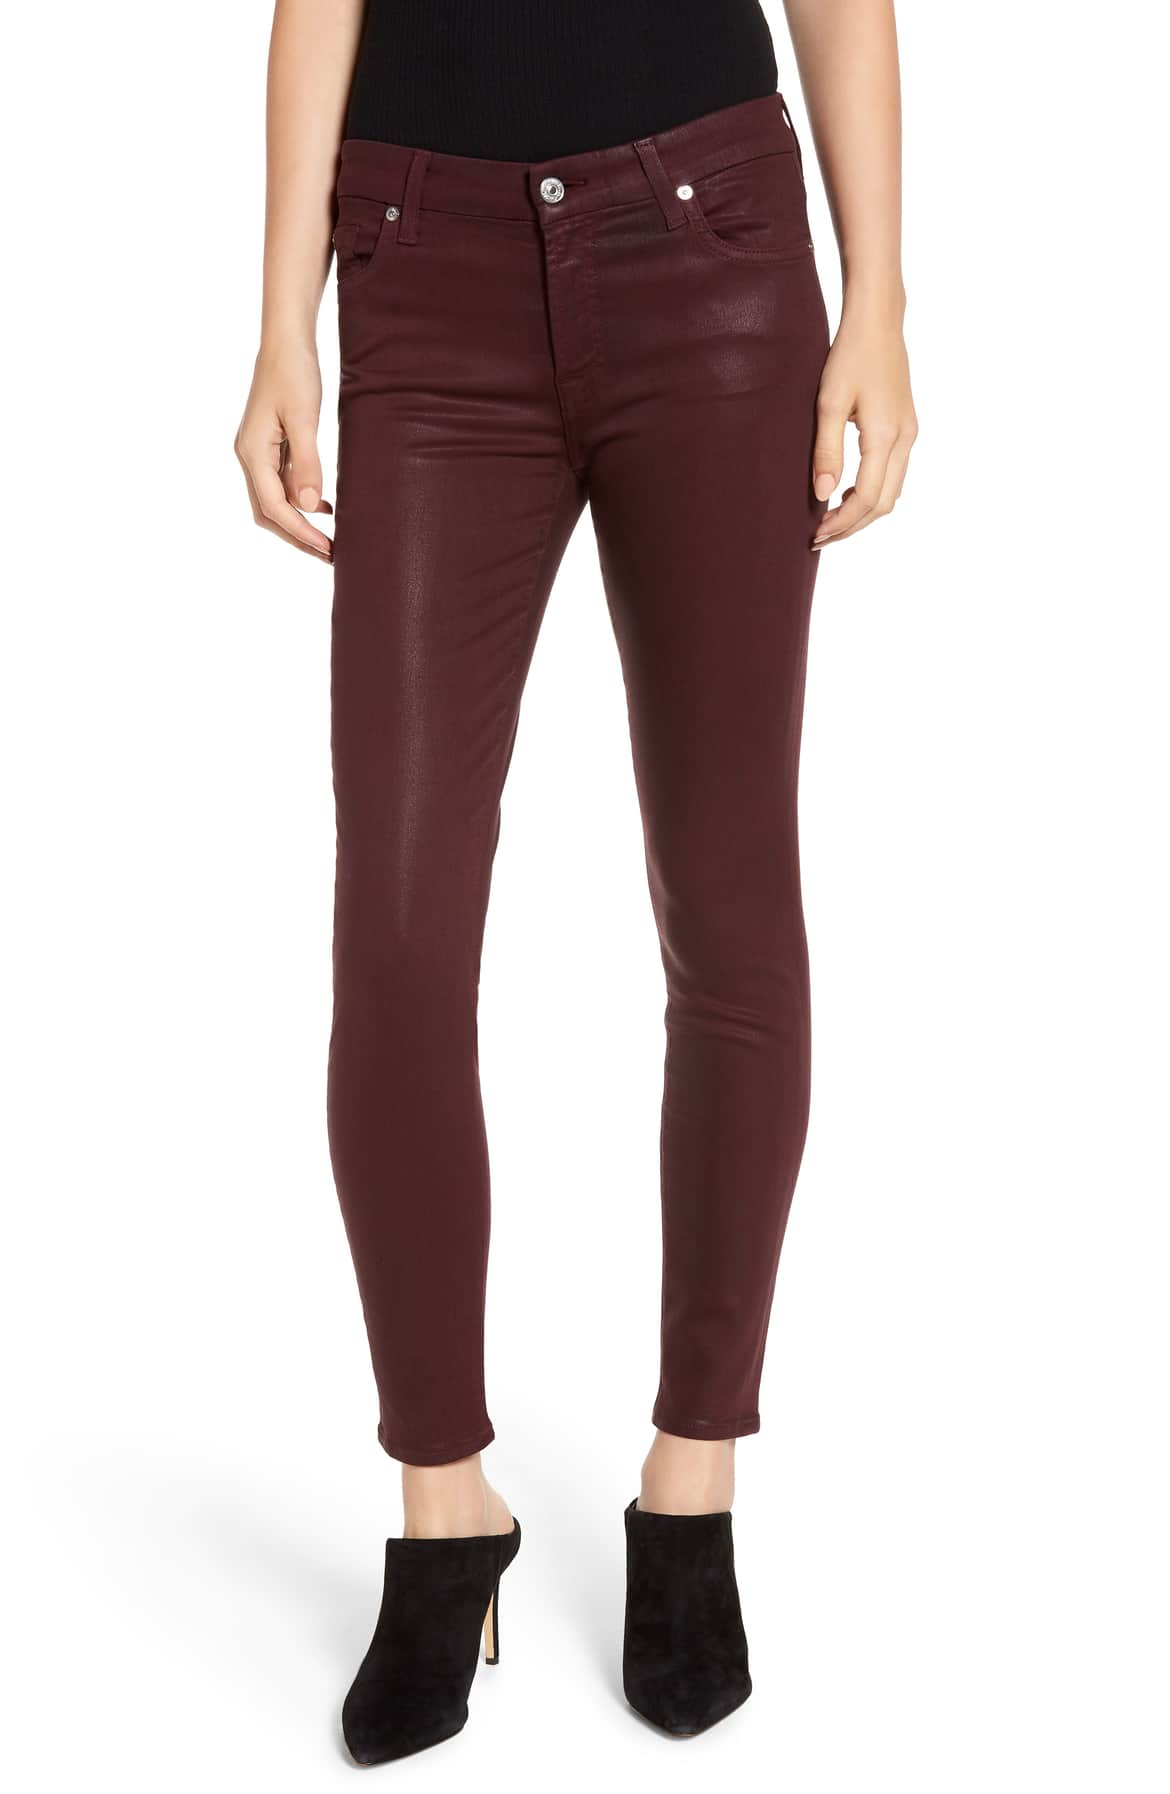 7 for all mankind plum coated skinny jeans